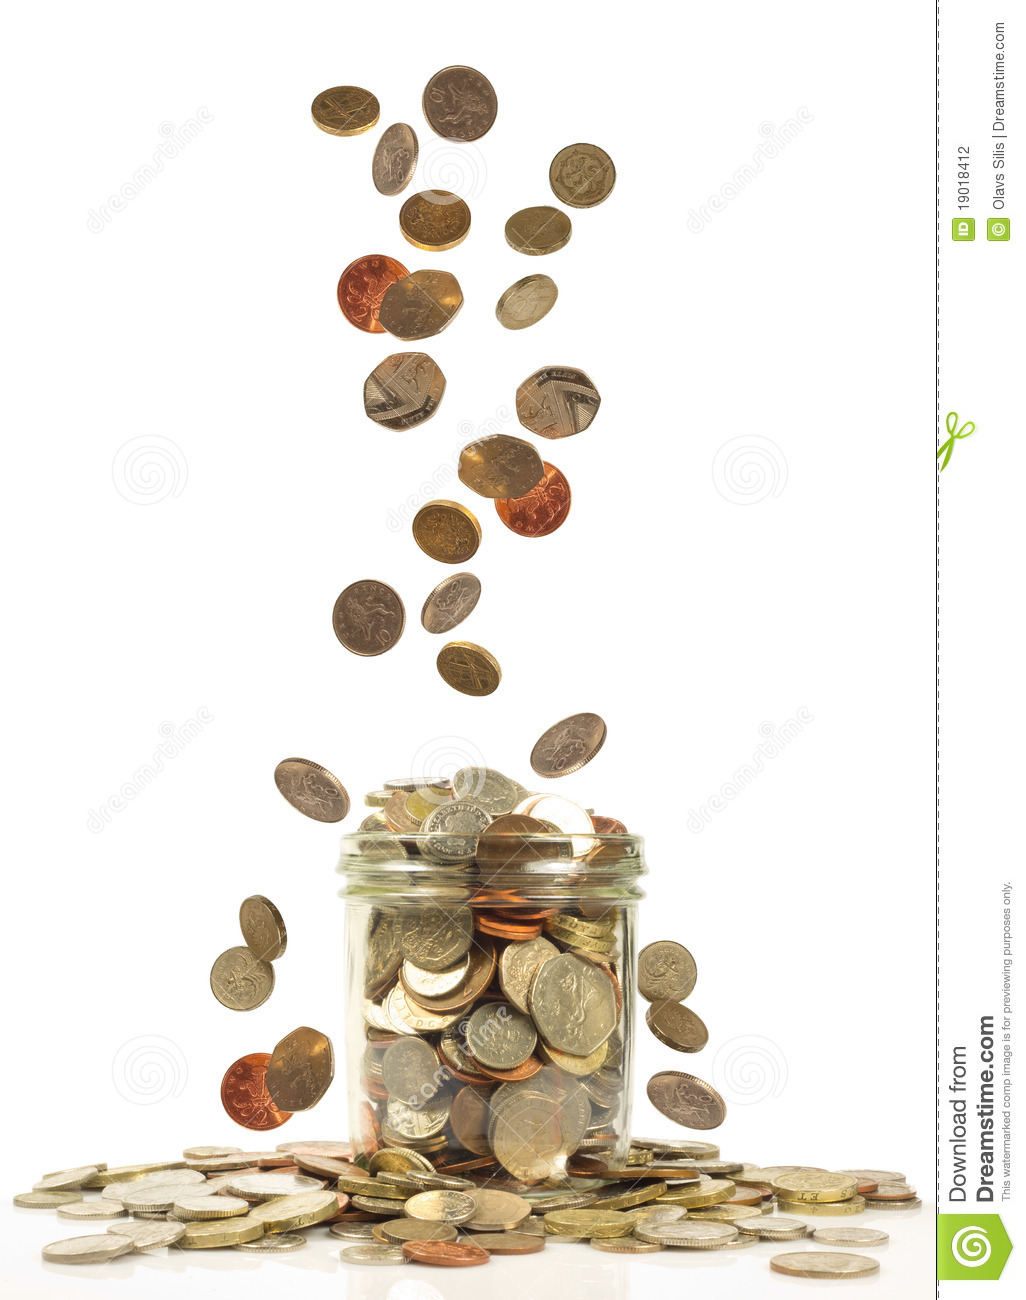 Gold coins png. Falling